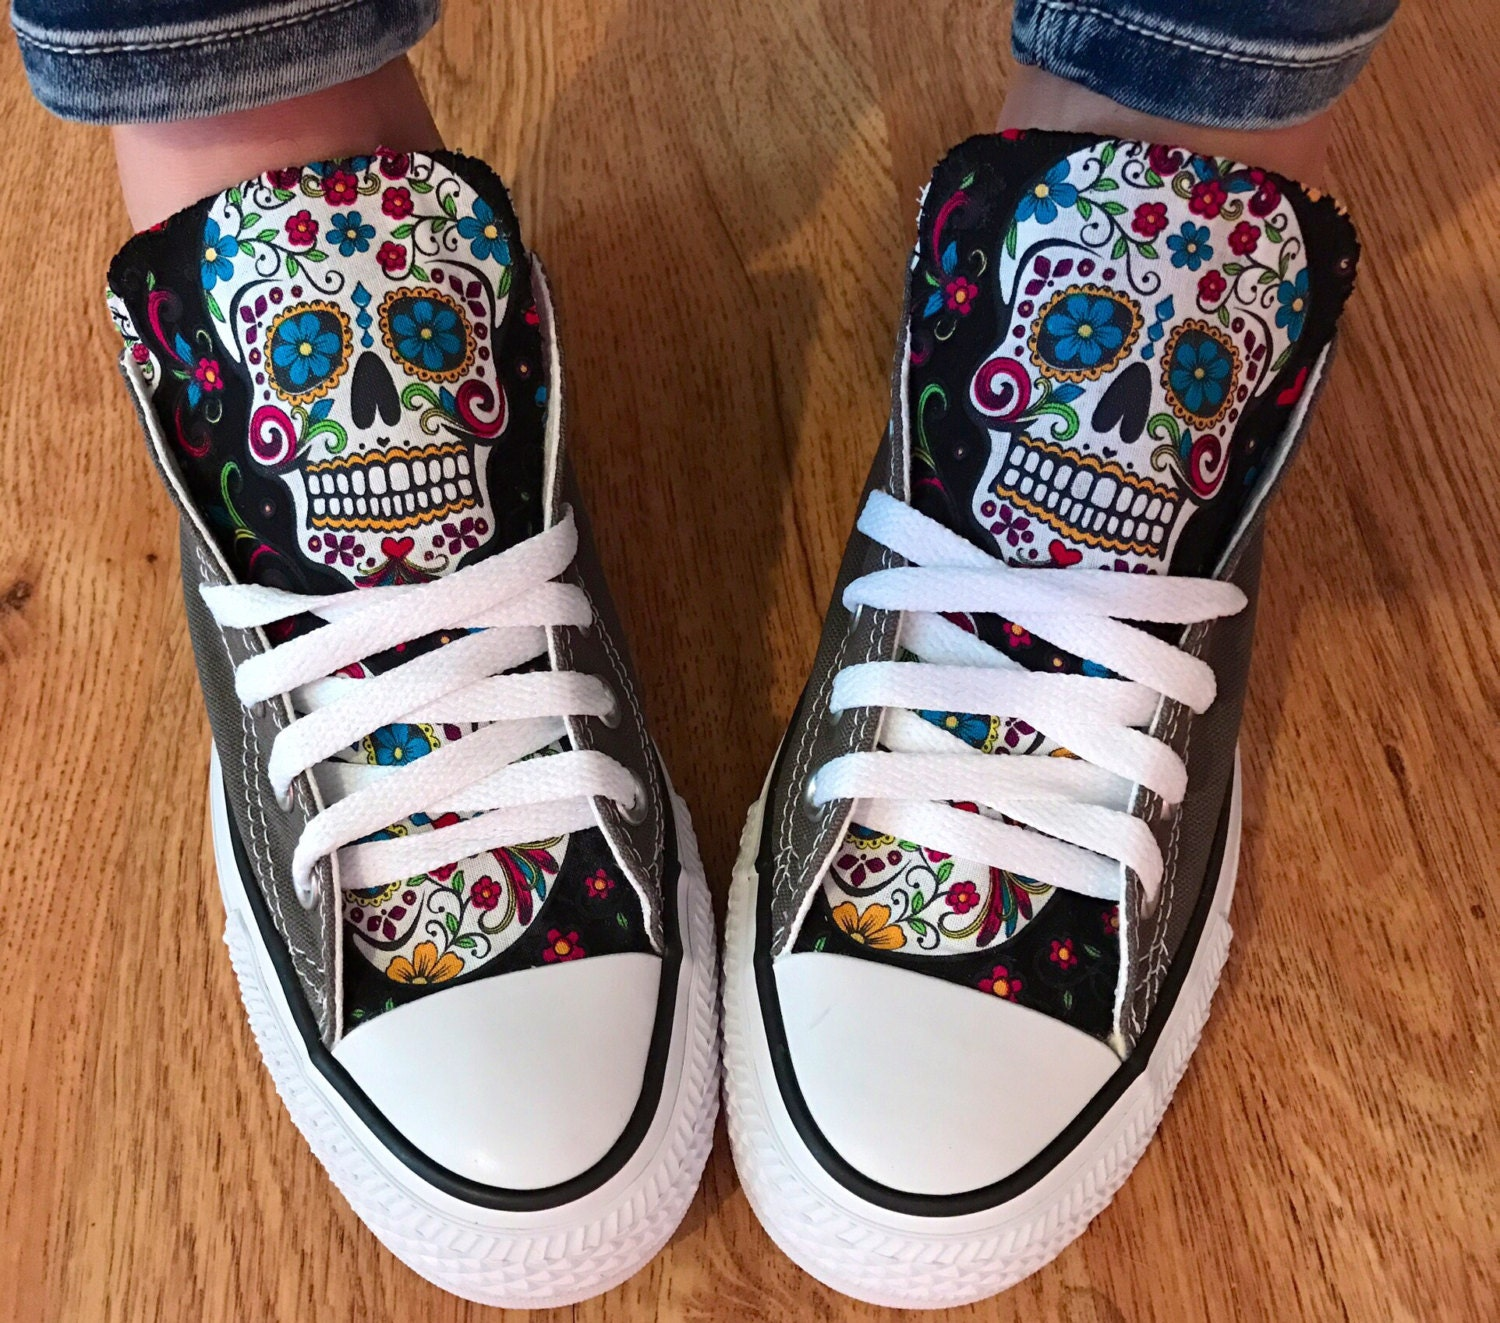 Sugarskull Converse Chuck Taylor Shoes - My Sugar Skulls